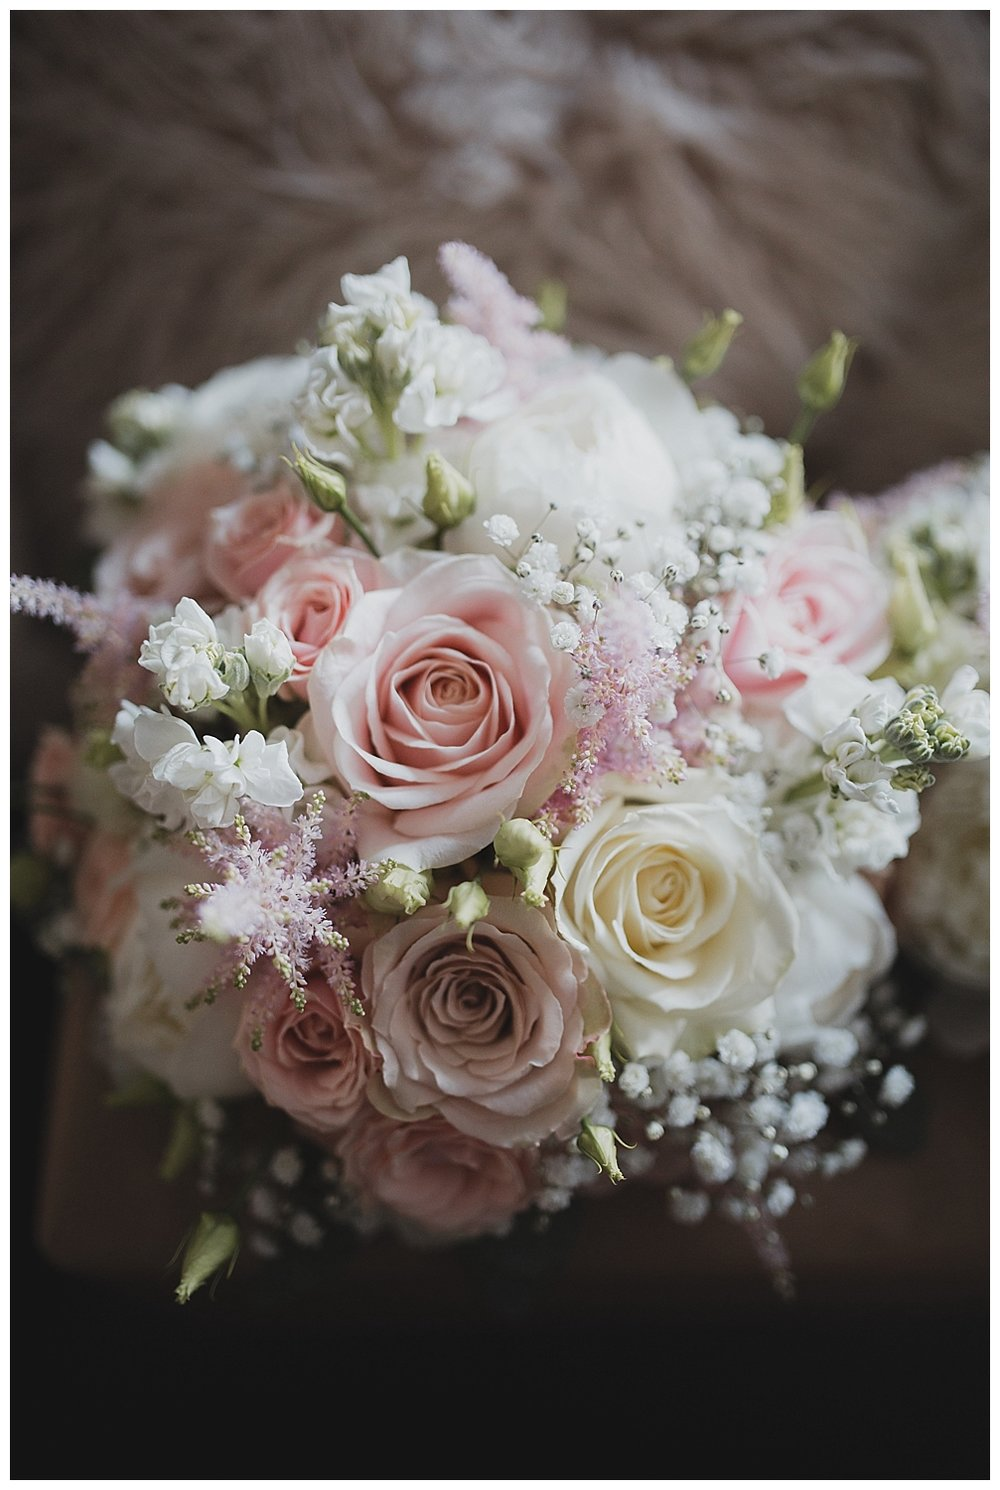 Flowers by Blossoms in Leek for this Stoke on Trent wedding.